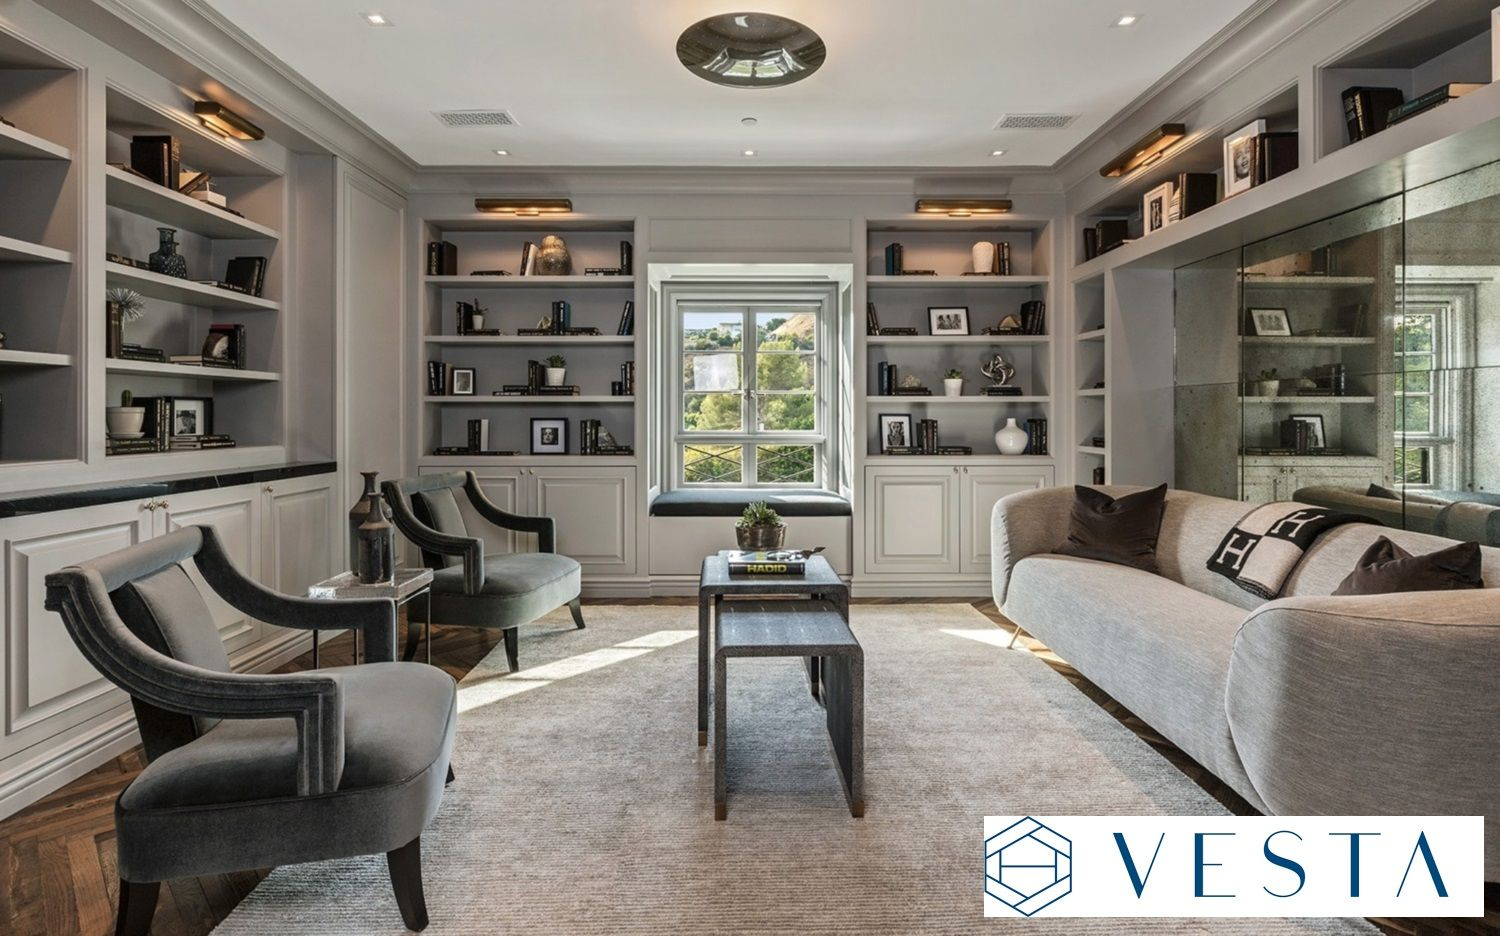 Vesta Luxury Home Staging Is One Of The Best Interior Design Firms